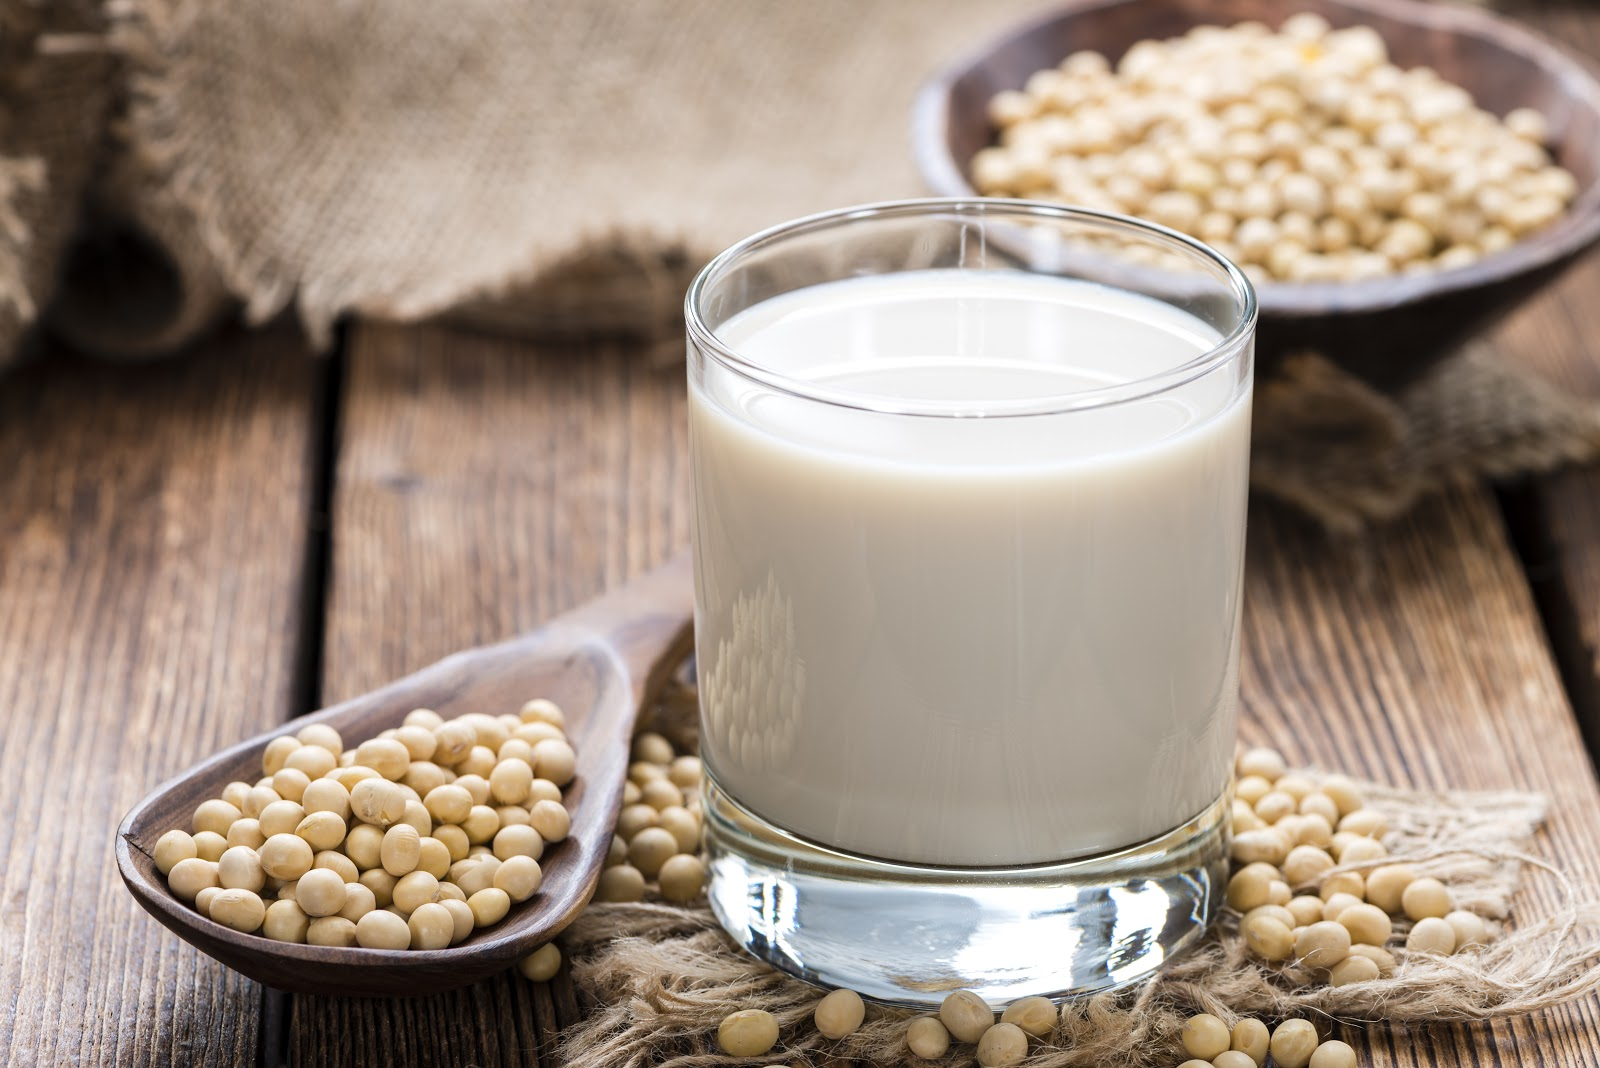 A glass of soy milk with soy beans arranged on a wooden spoon around the glass.